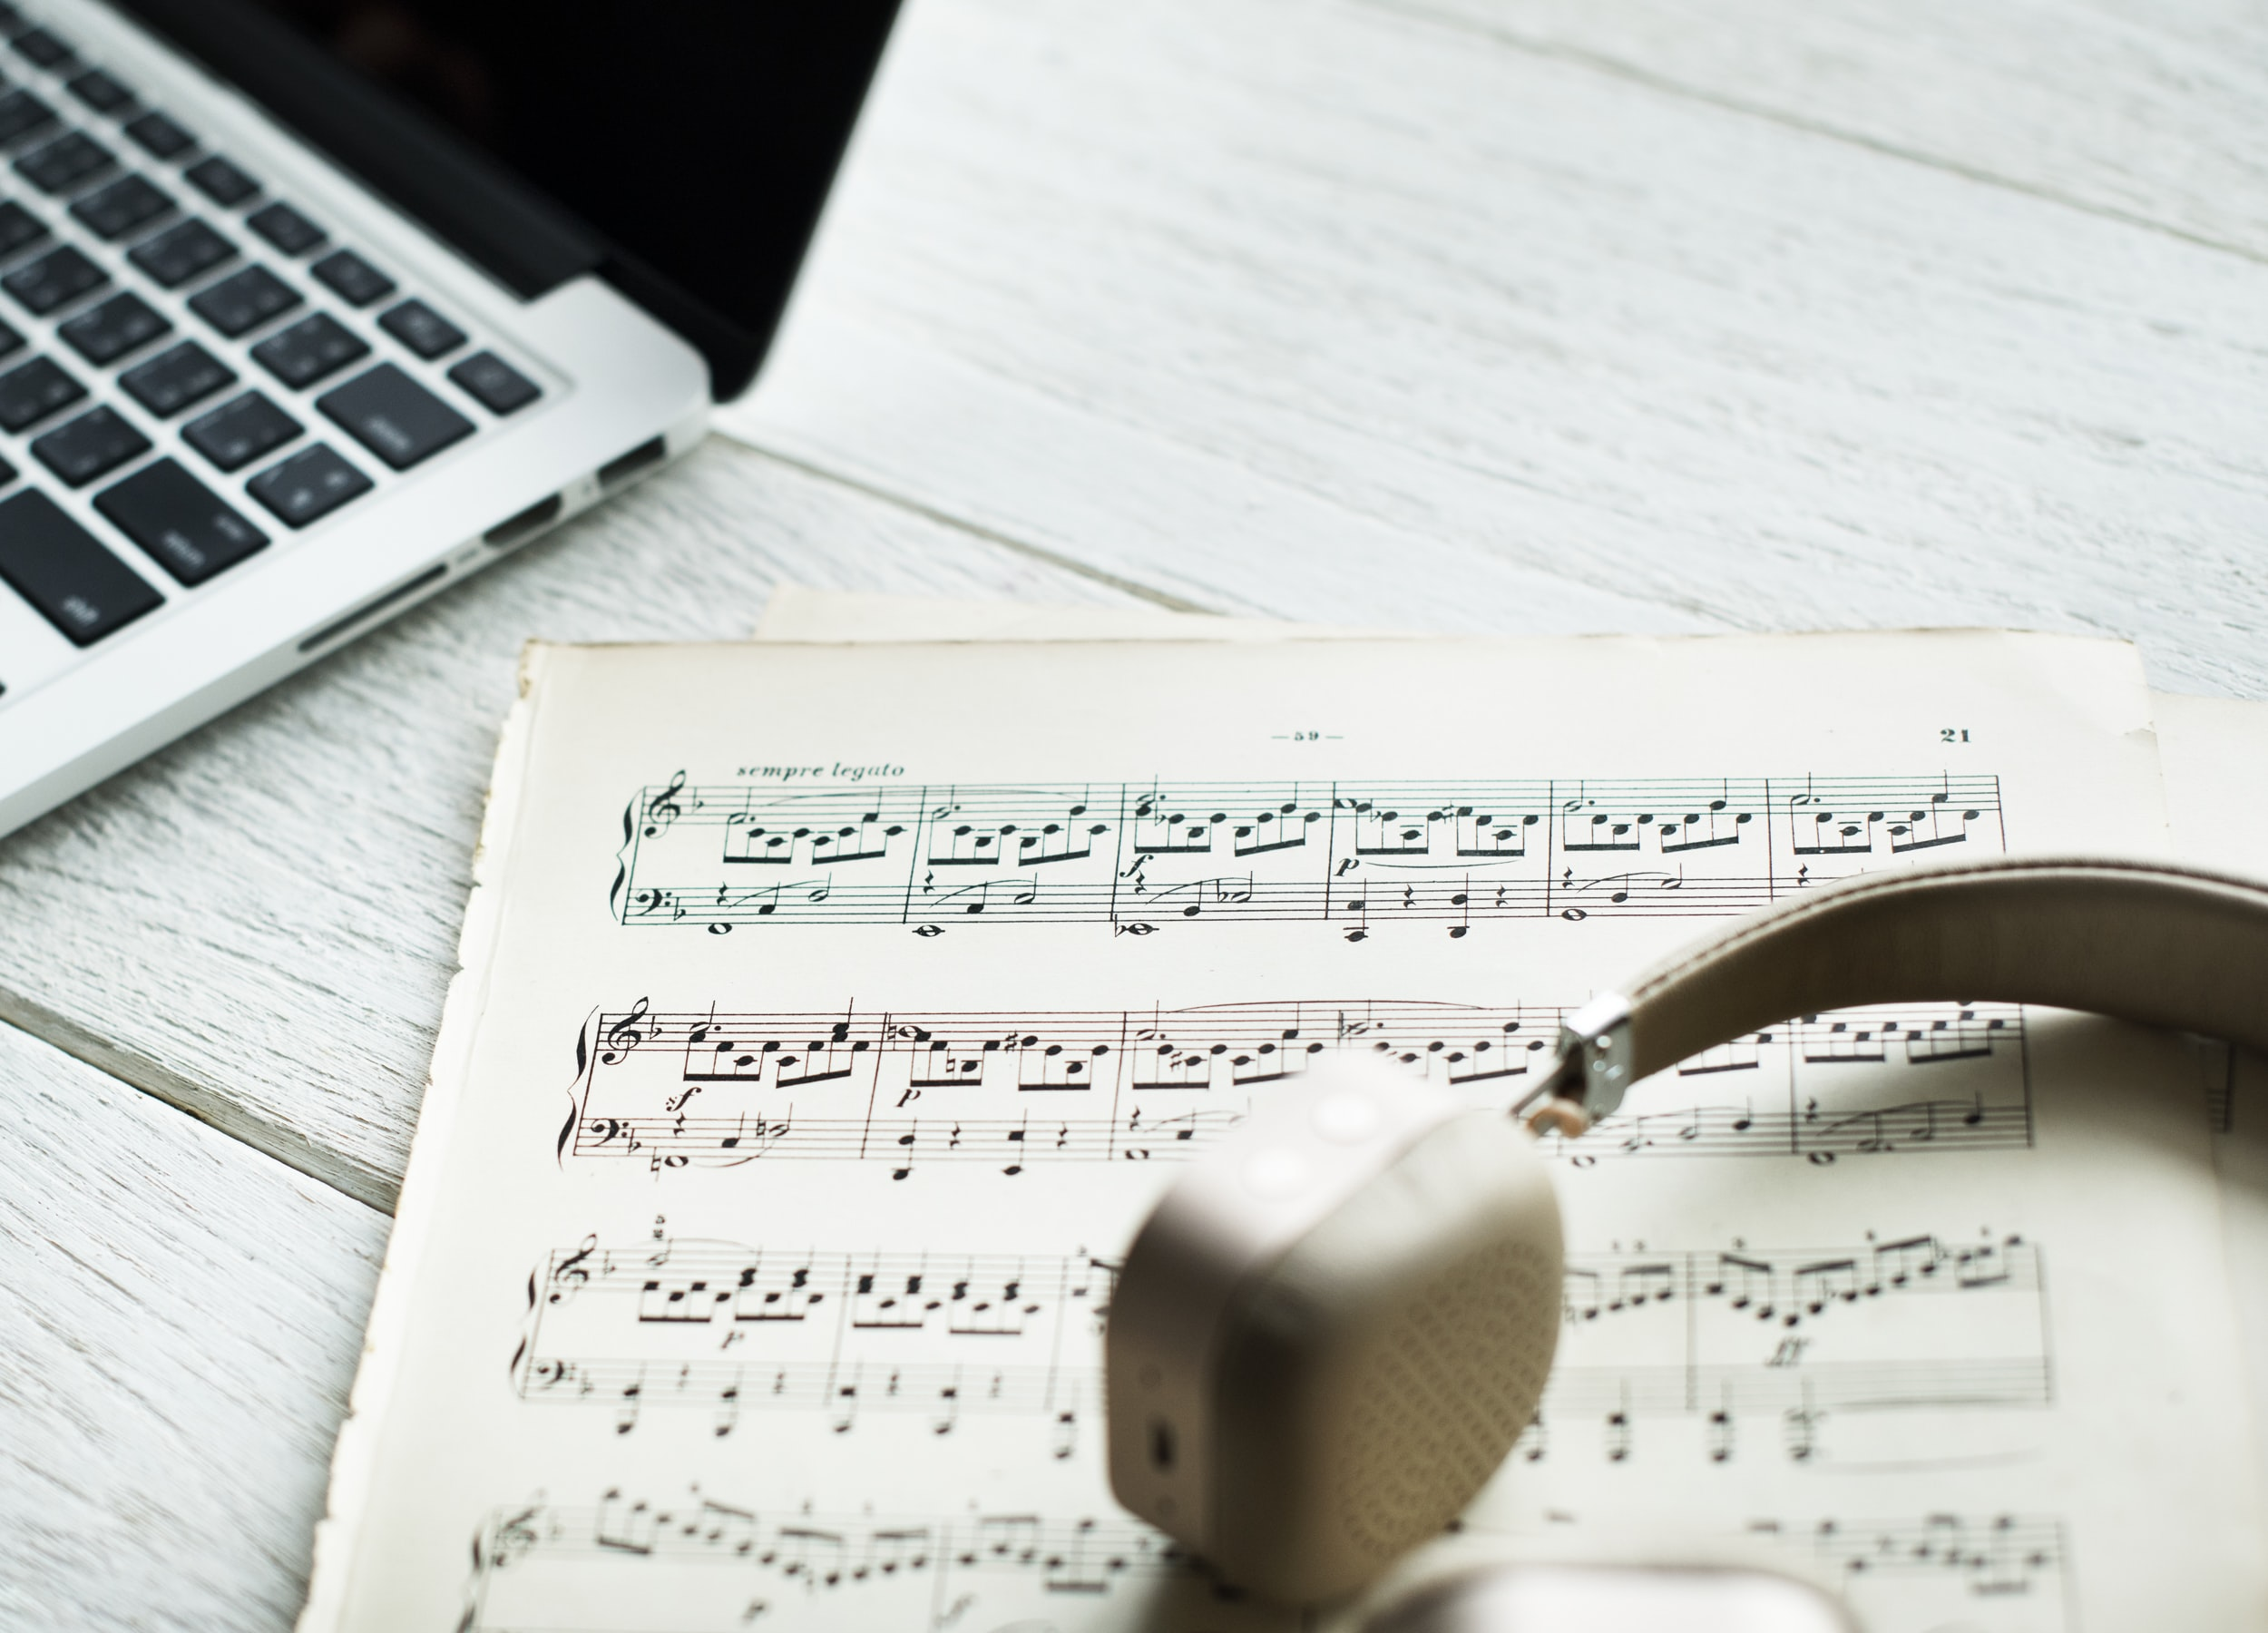 headphones on top of musical composition note beside laptop